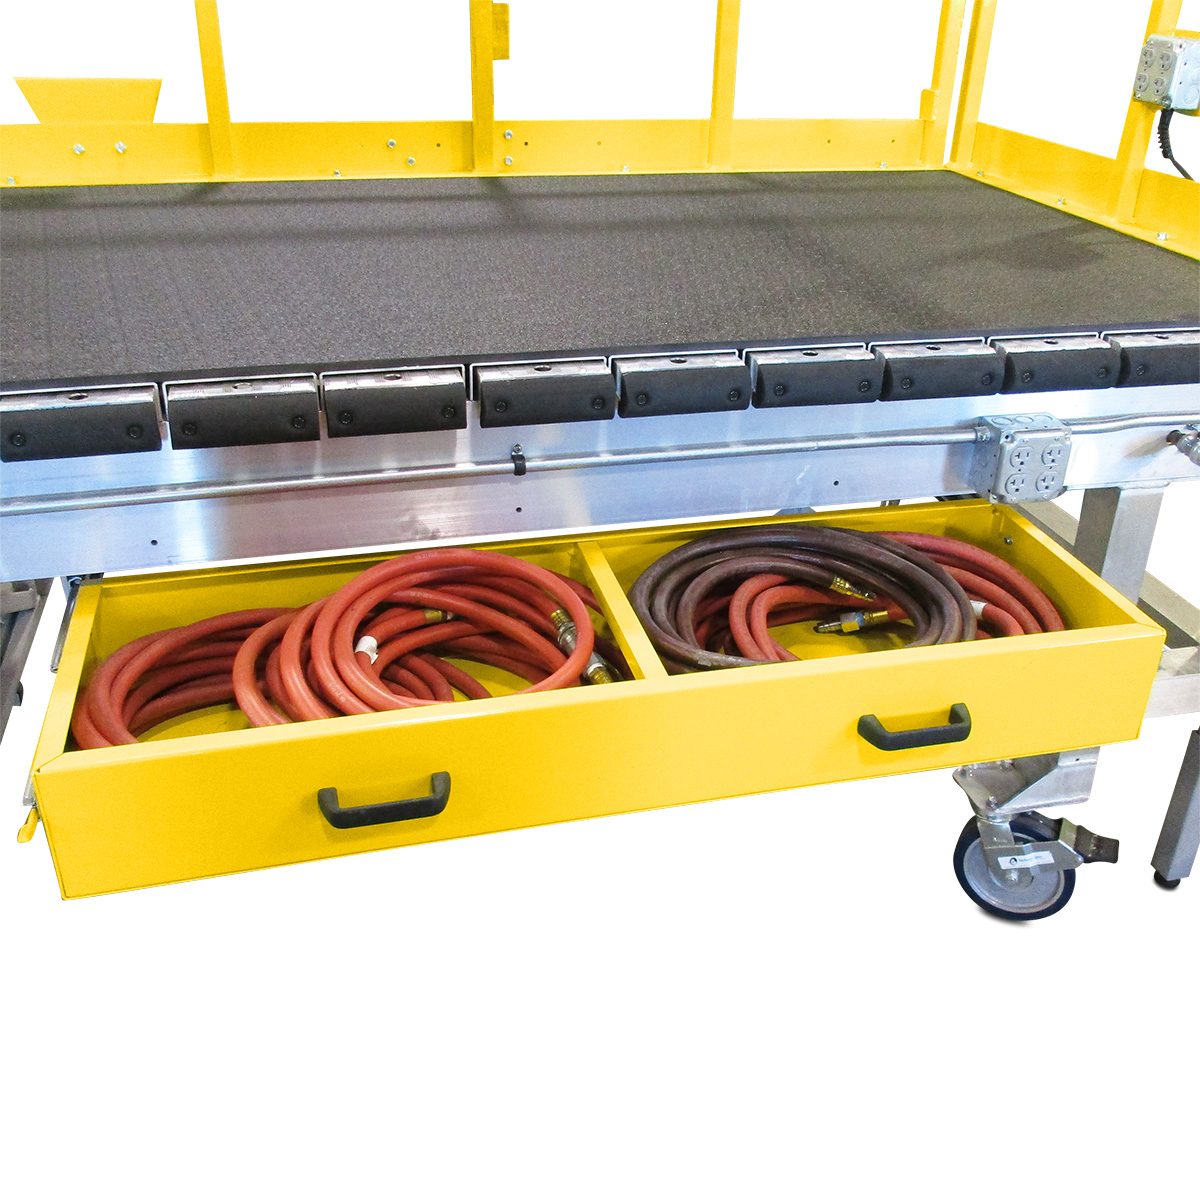 Ergonomic storage for OSHA compliant, portable, aluminum work stands with integrated cabinets and integrated drawers.